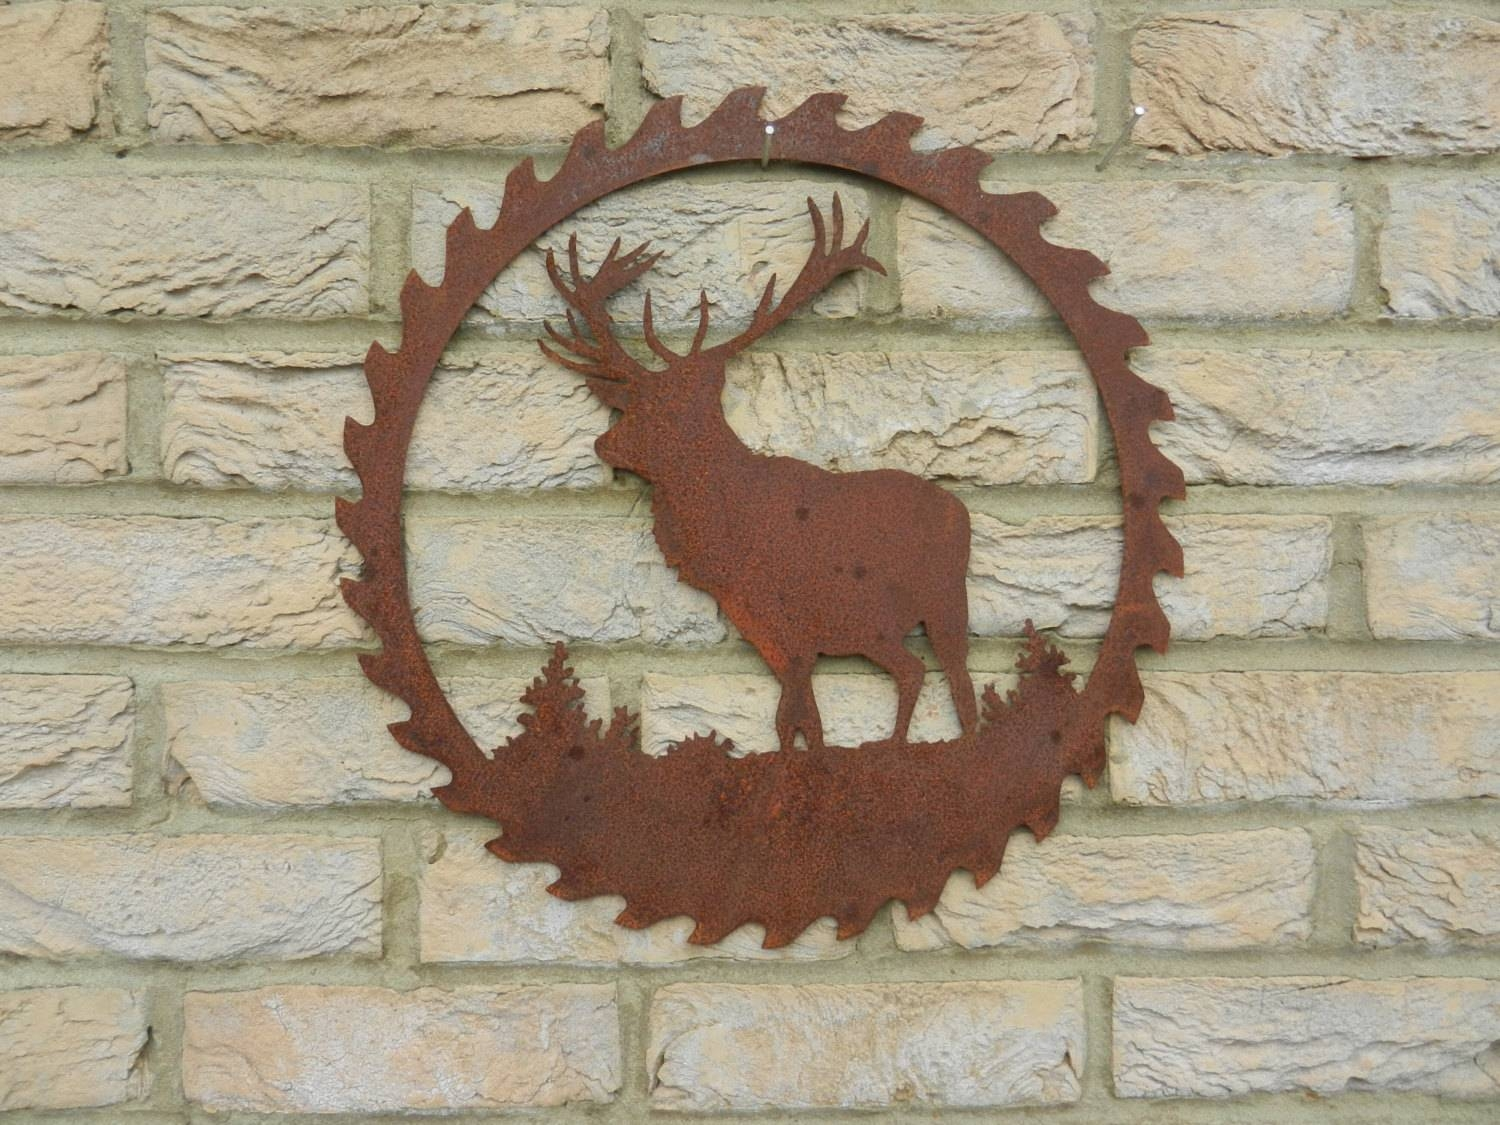 Stag Wall Art / Rusty Metal Garden Decoration / Stag Gift / With Most Current Stag Wall Art (View 14 of 20)